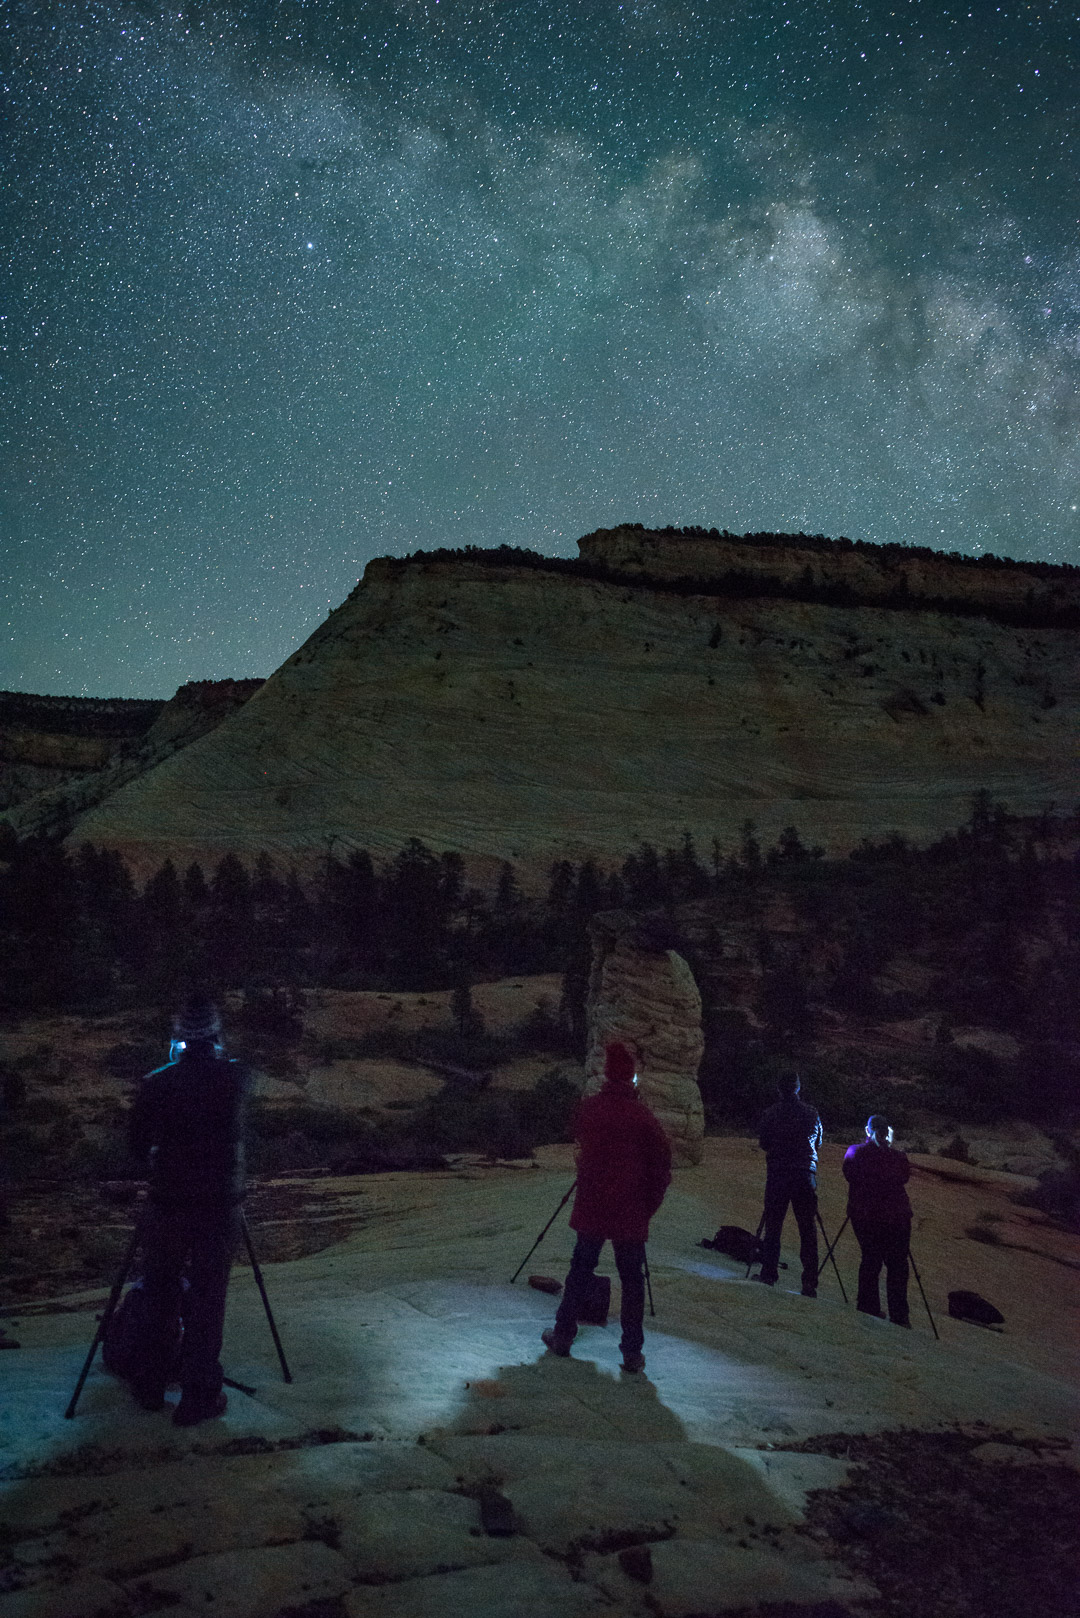 Workshop students in Zion National Park. This view of Checkerboard Mesa faces southeast, and shows movement in the stars that would be visible only in a very large print, or when pixel-peeping at 100 percent magnification.  Nikon D750 , Nikkor  24mm f/1.4 lens . 15 seconds, f/f2.8, ISO 12800.